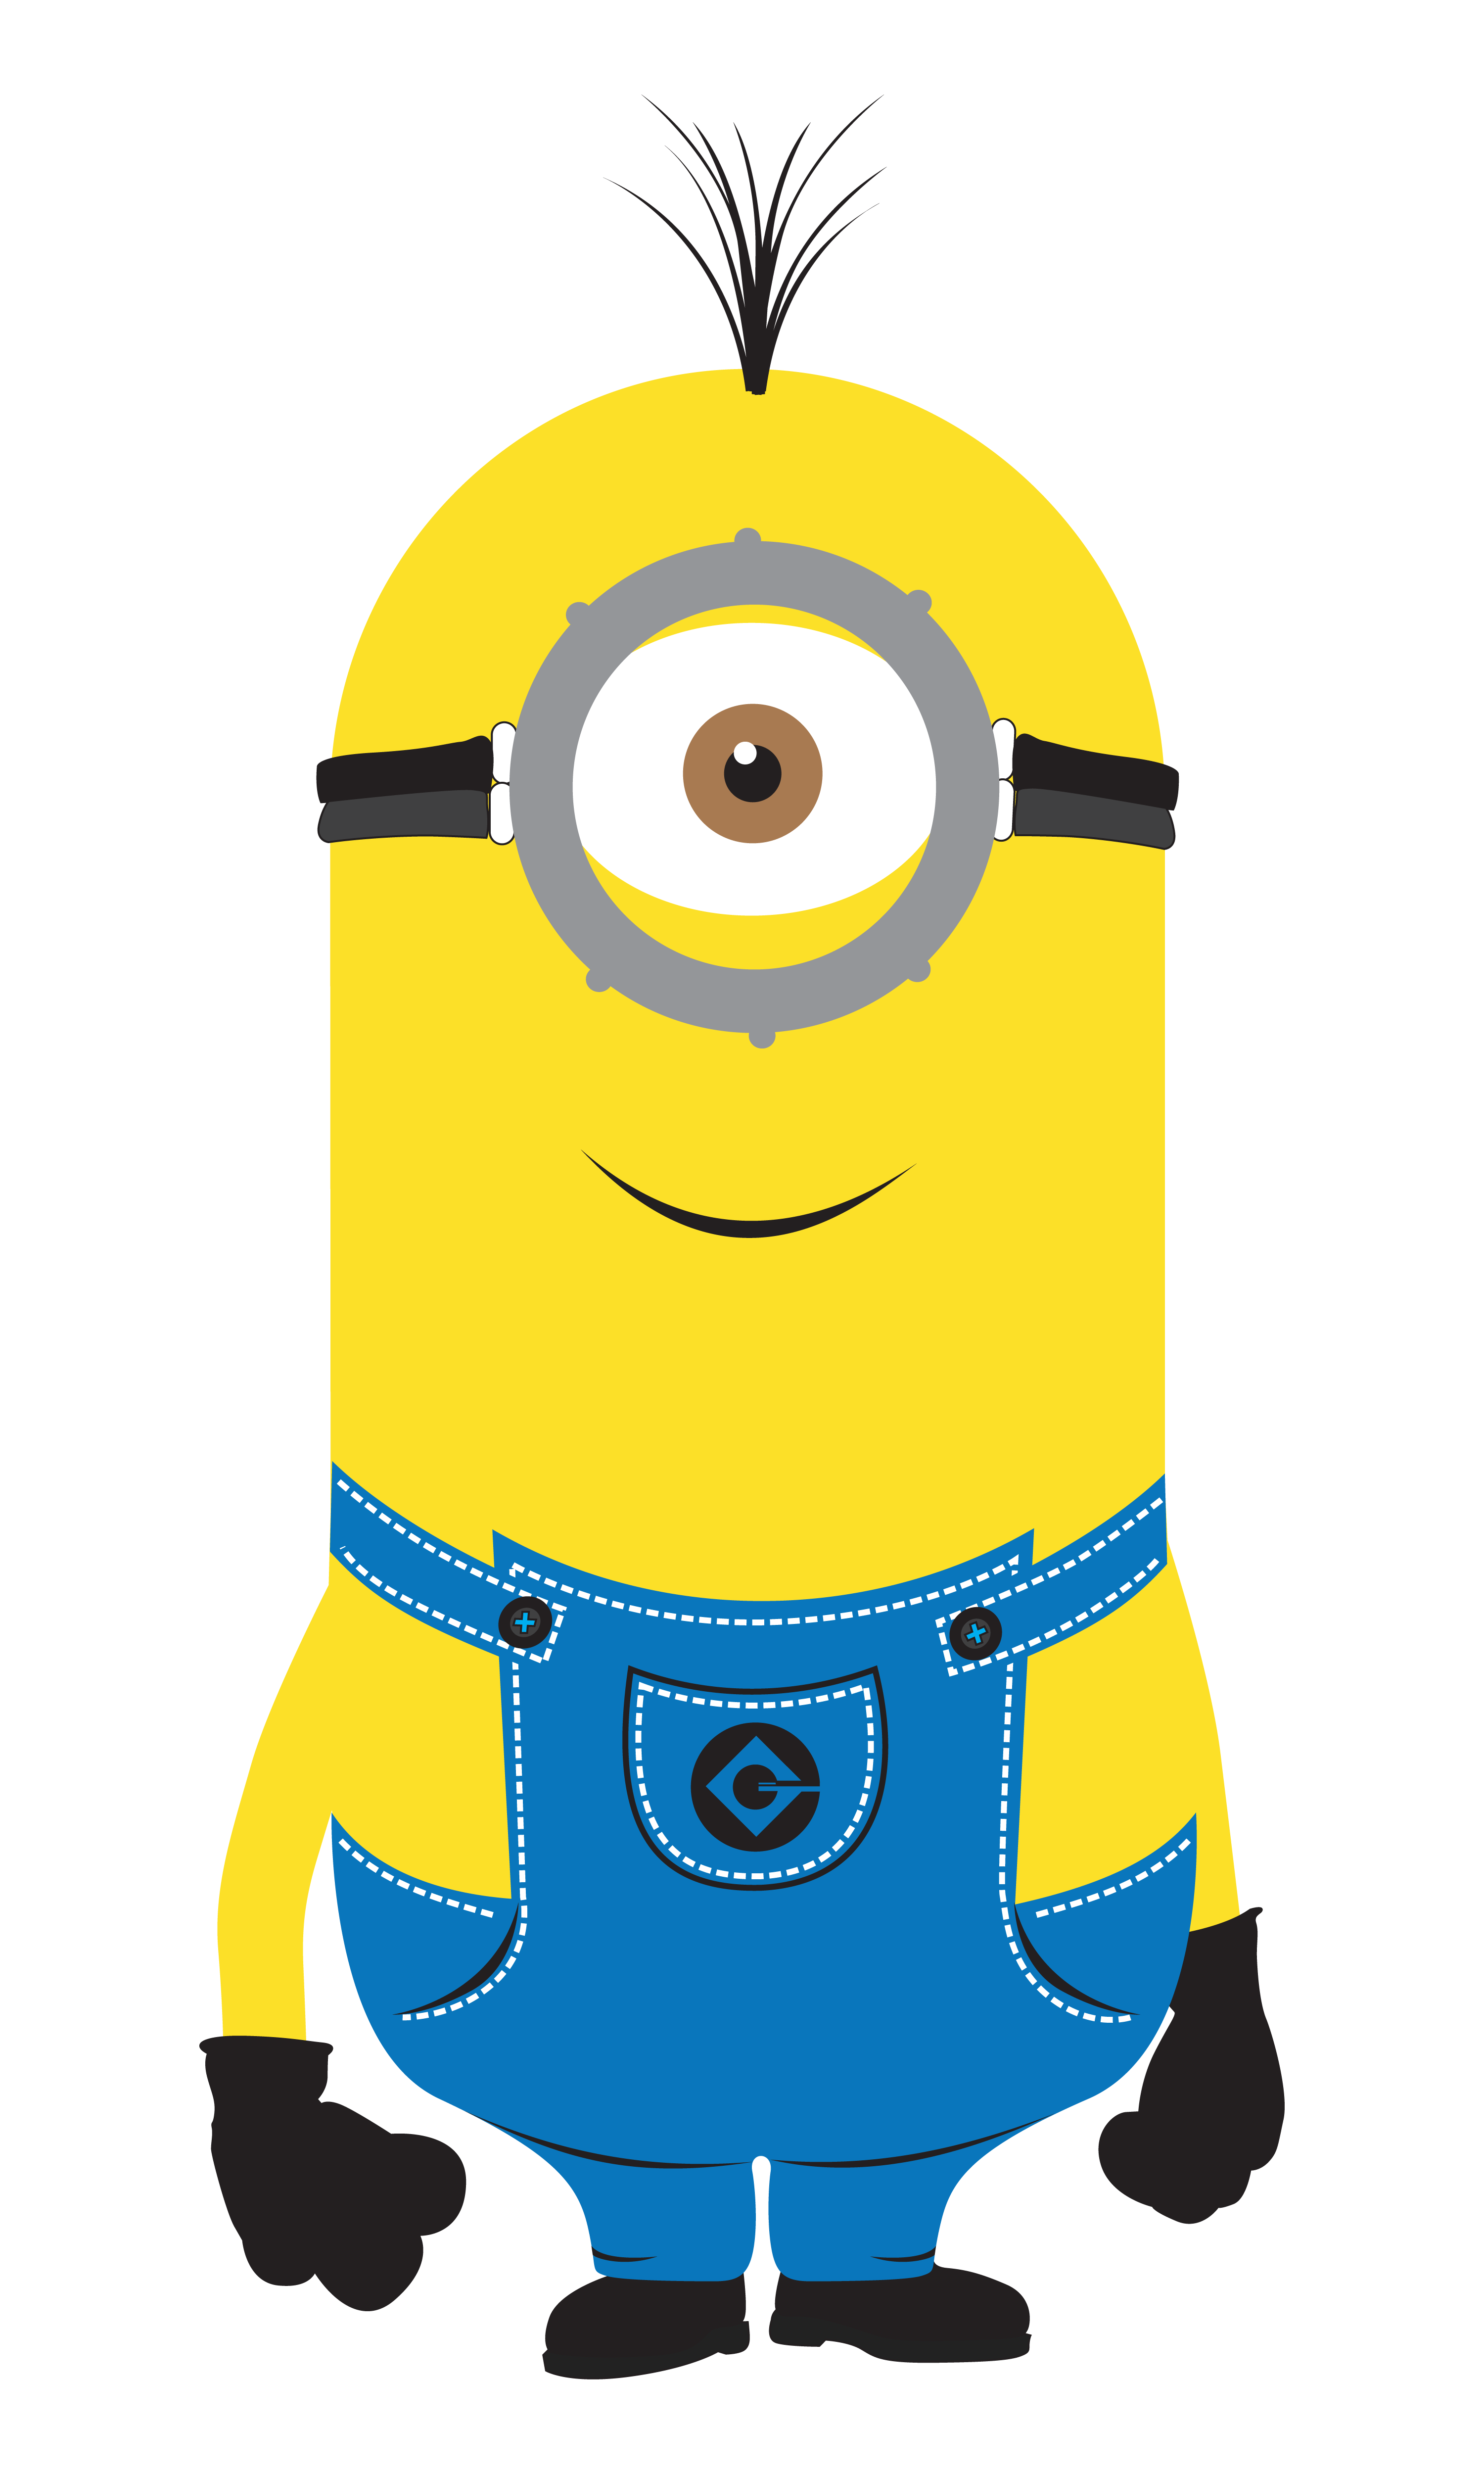 Despicable me minions vector. Wallet clipart animated